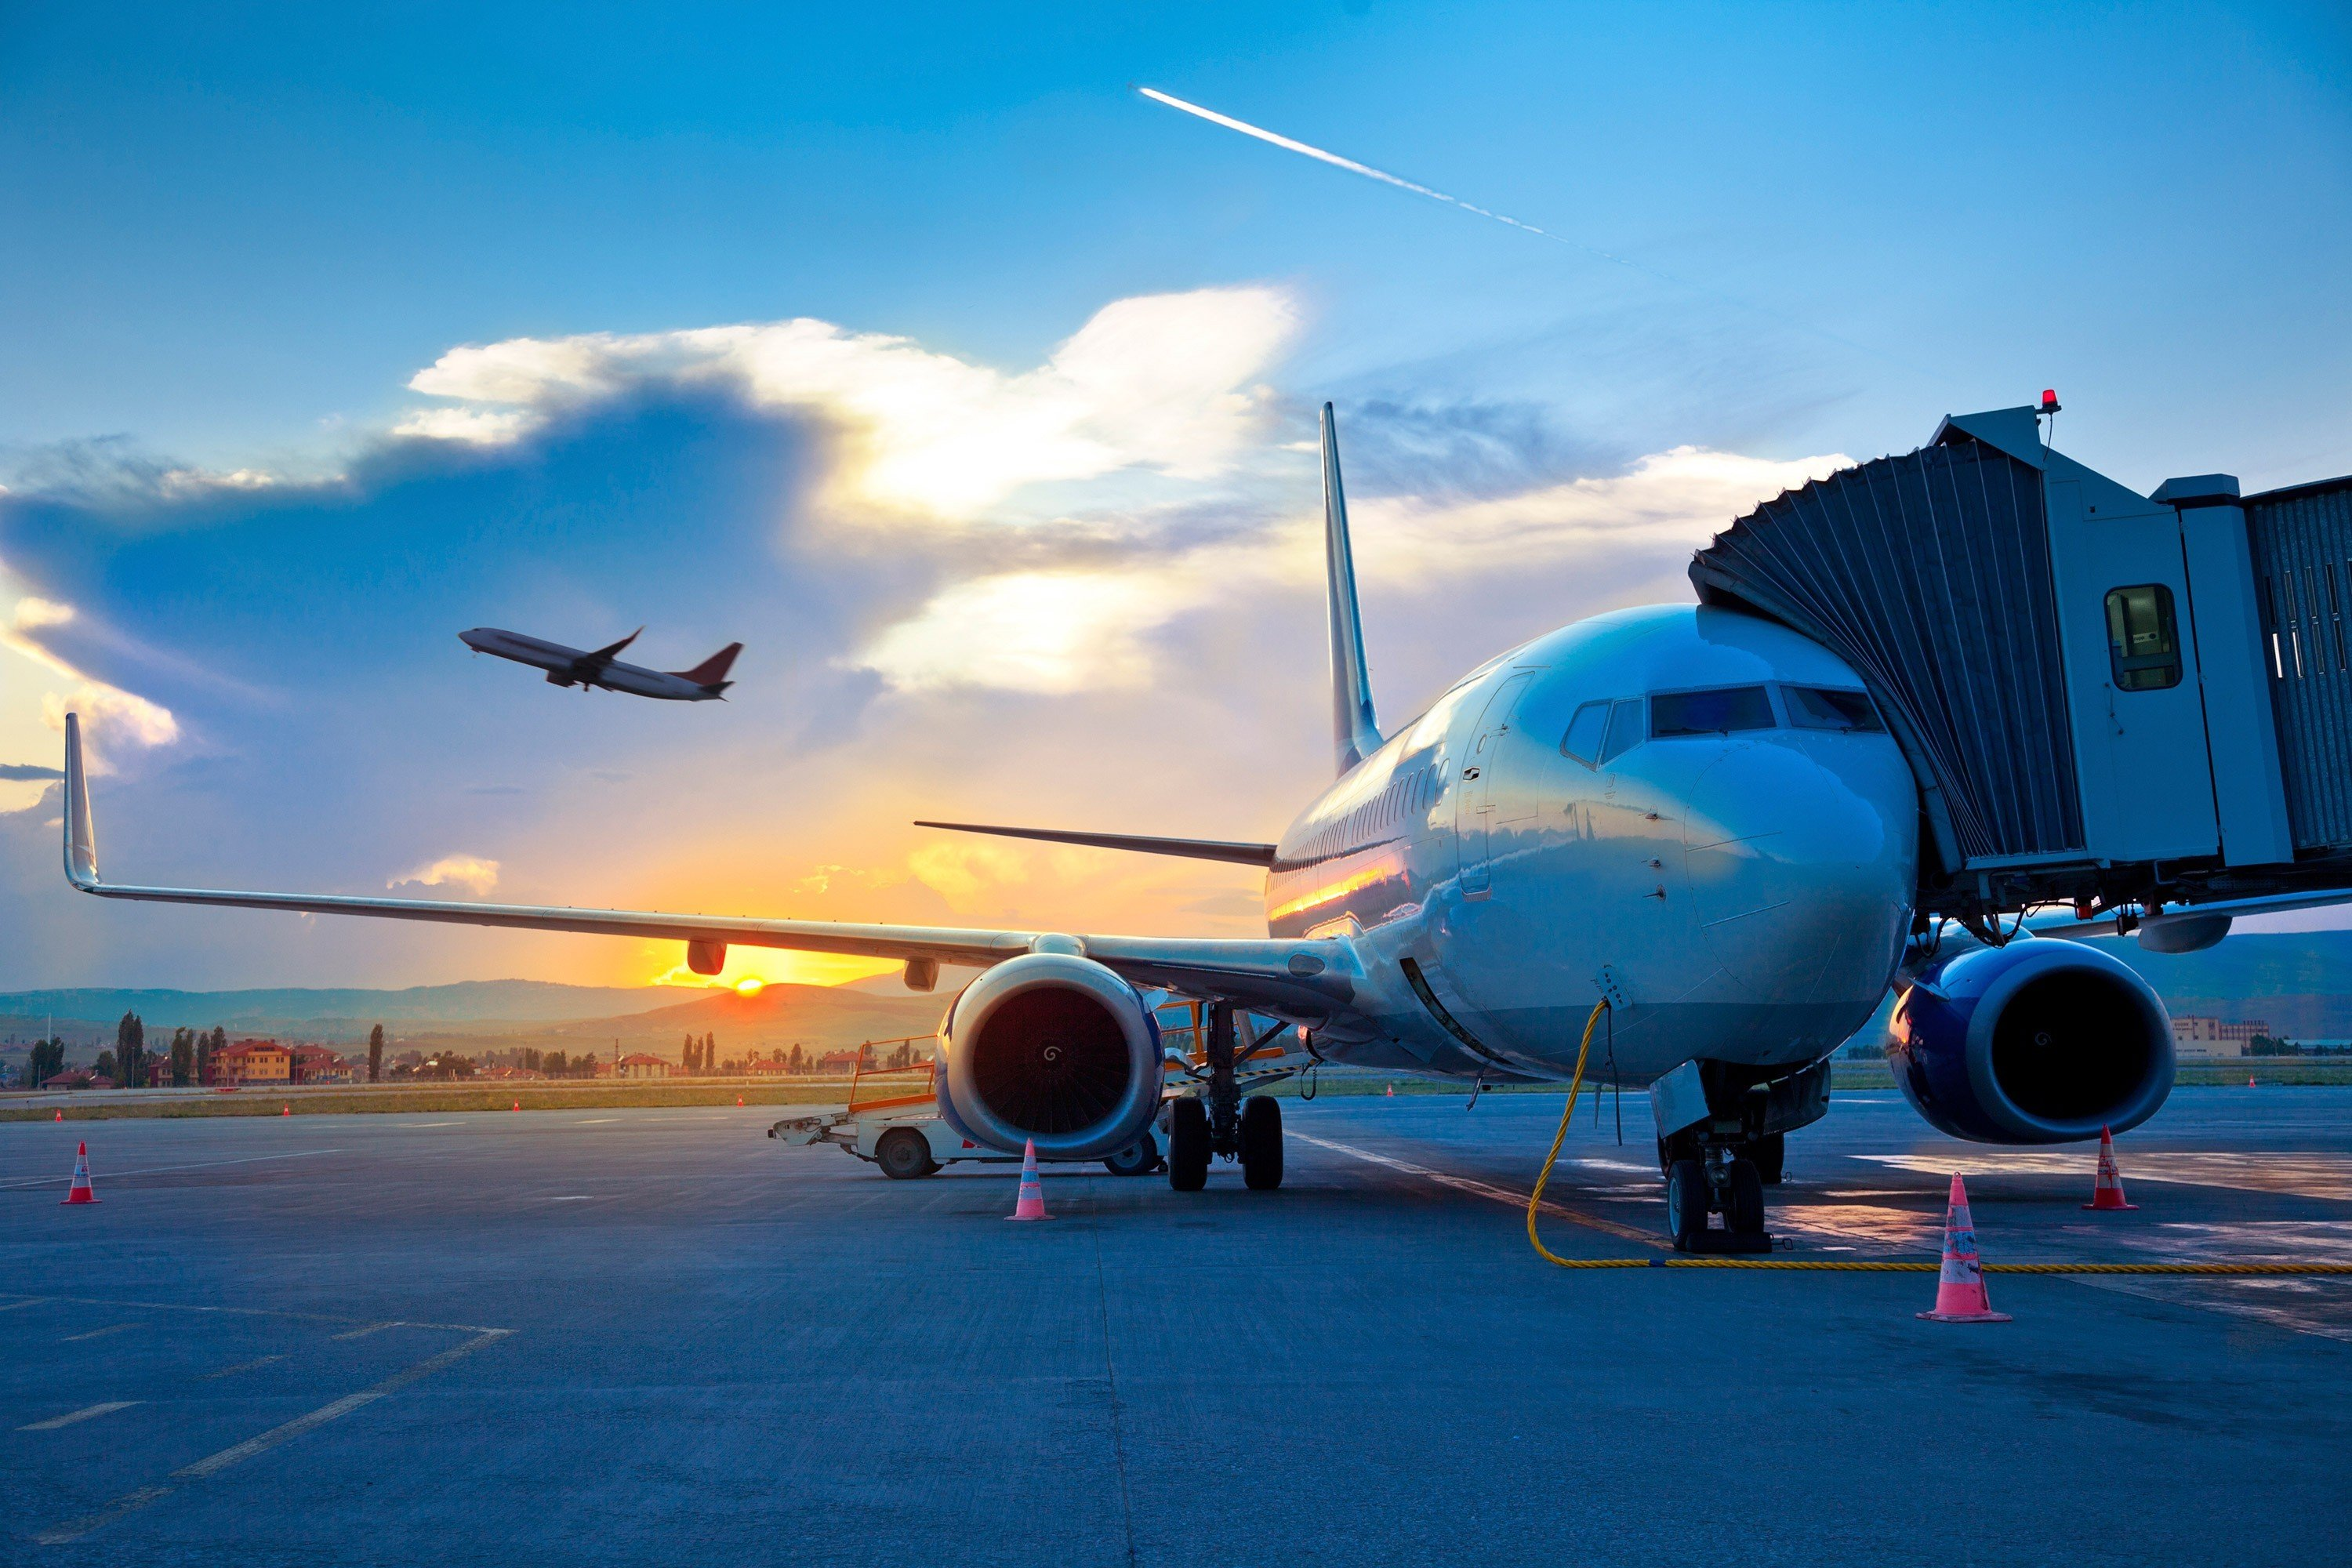 Flights Travel Tips sky plane airline airplane outdoor airliner air travel aircraft vehicle aviation wide body aircraft atmosphere of earth narrow body aircraft boeing aerospace engineering jet aircraft blue flight air force takeoff runway boeing 767 boeing 777 tarmac aircraft engine boeing 737